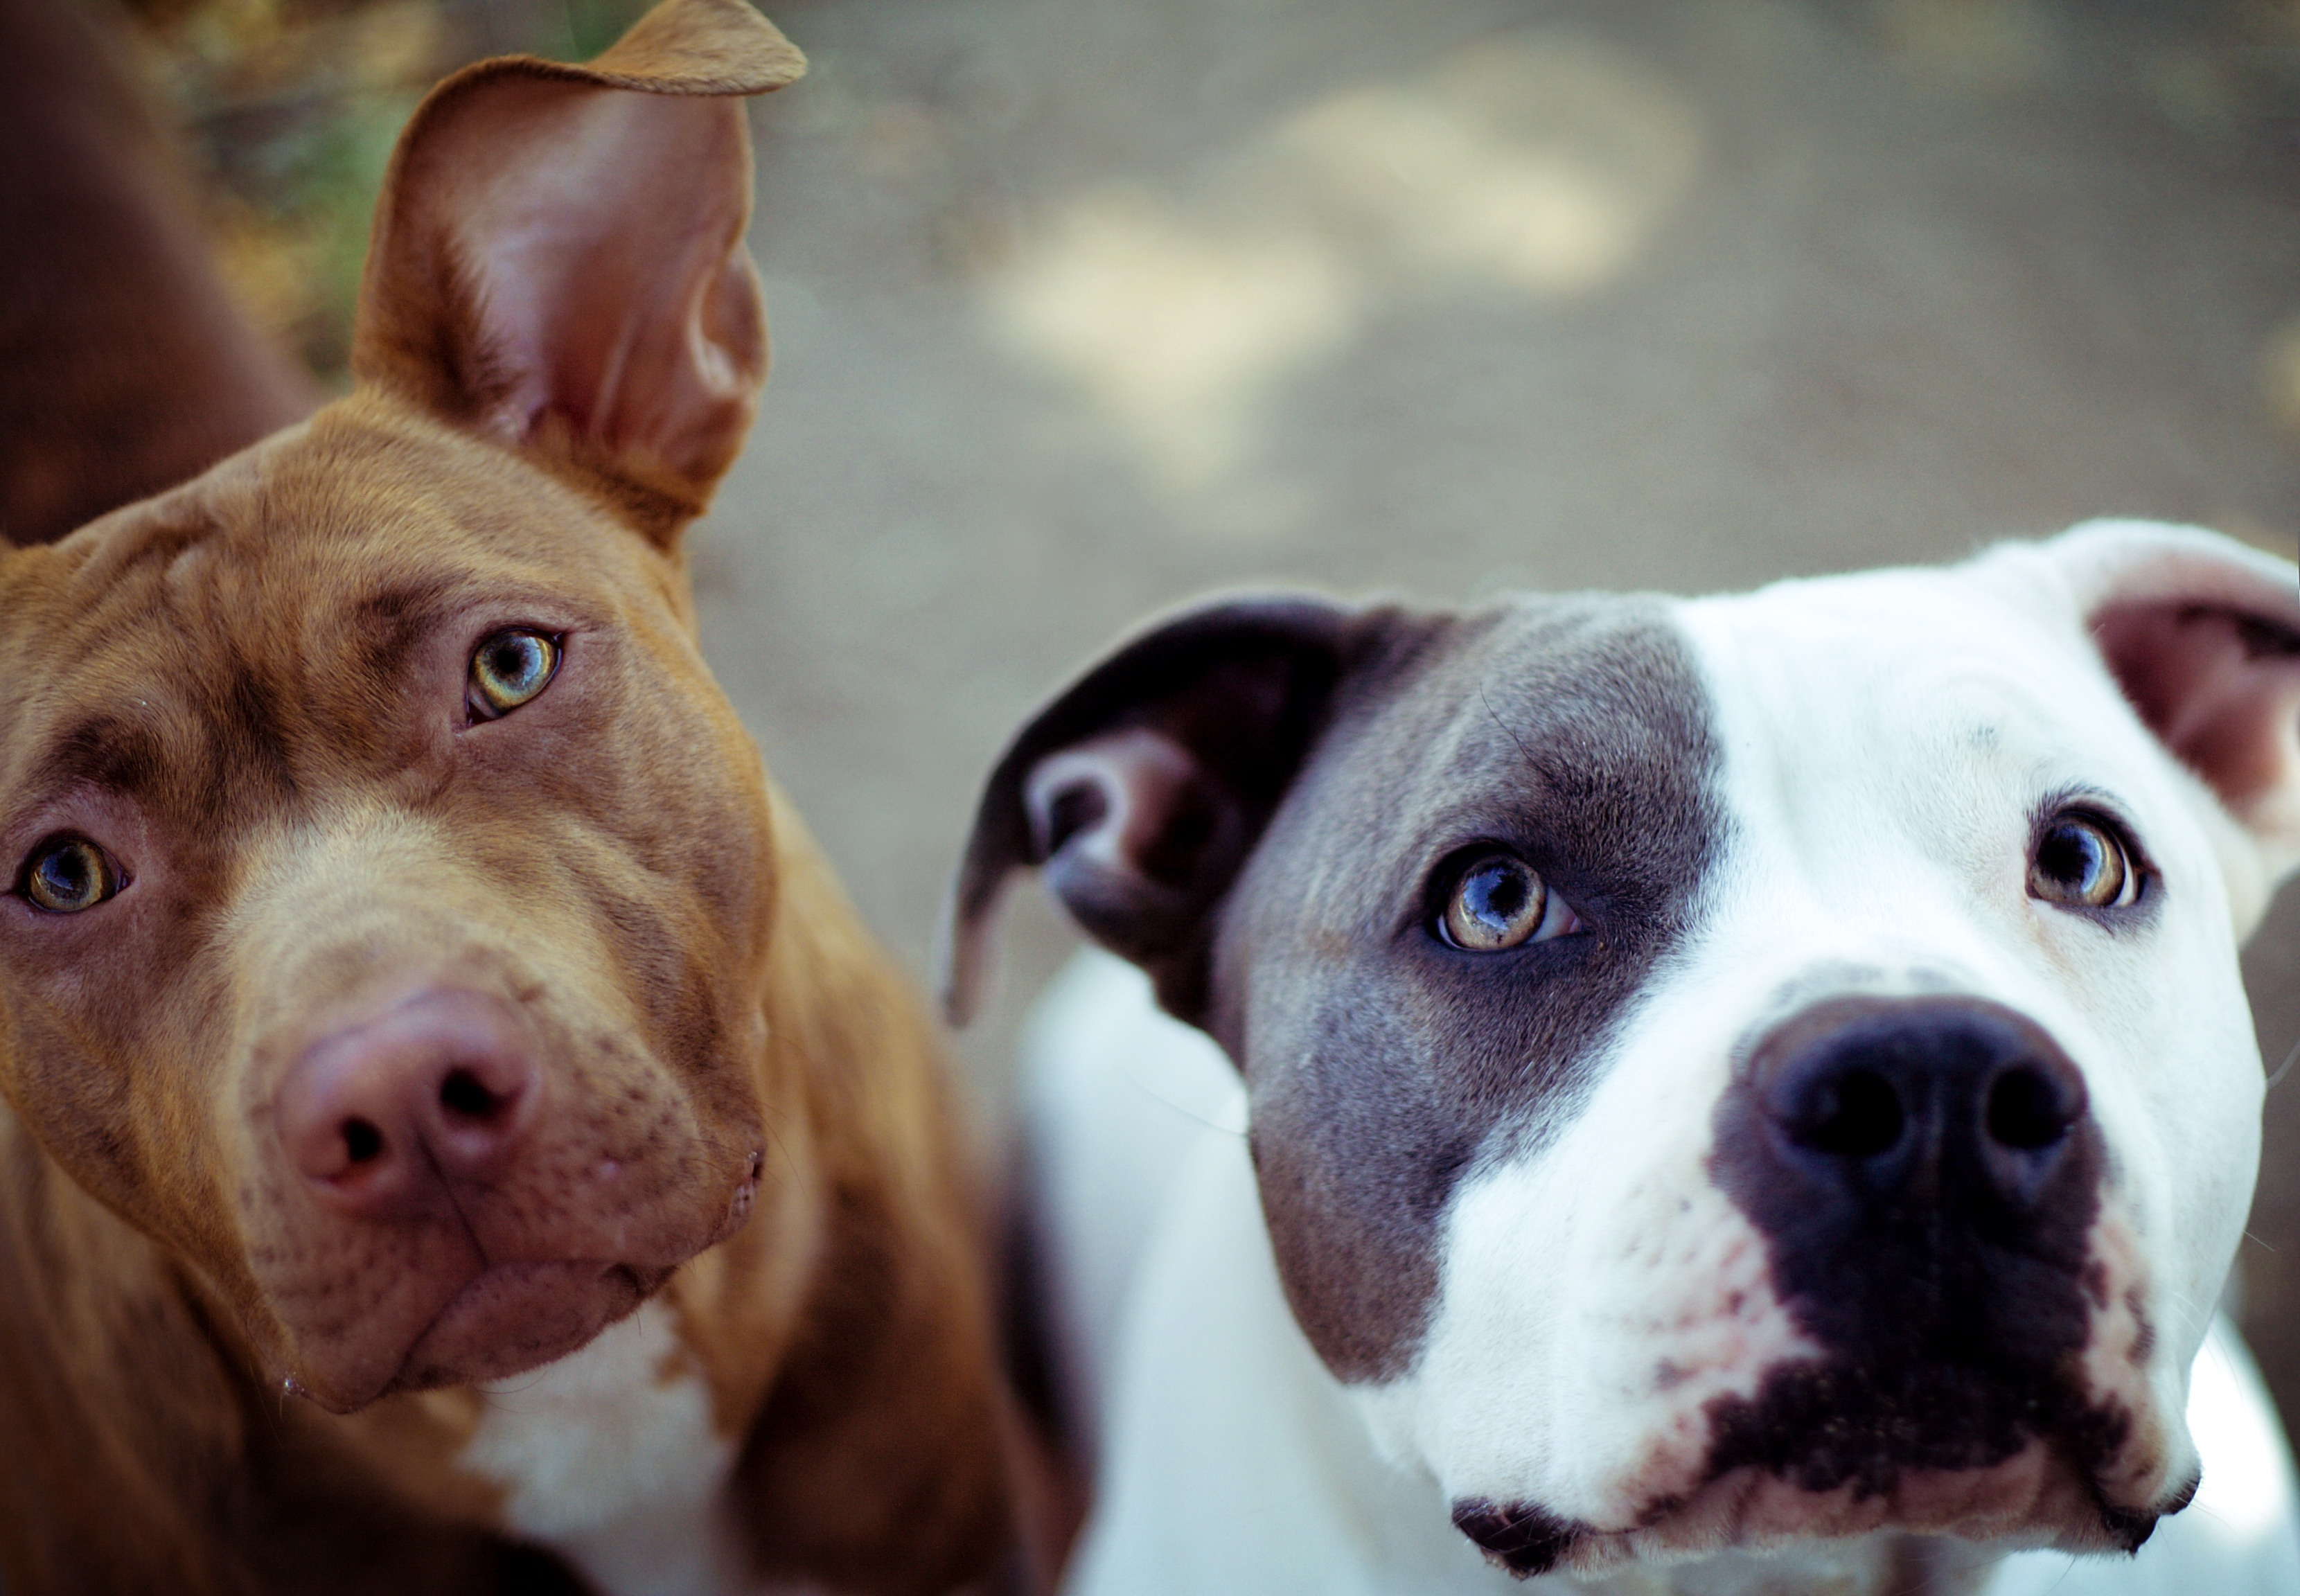 80710 download wallpaper Animals, Dogs, Muzzle, Couple, Pair screensavers and pictures for free